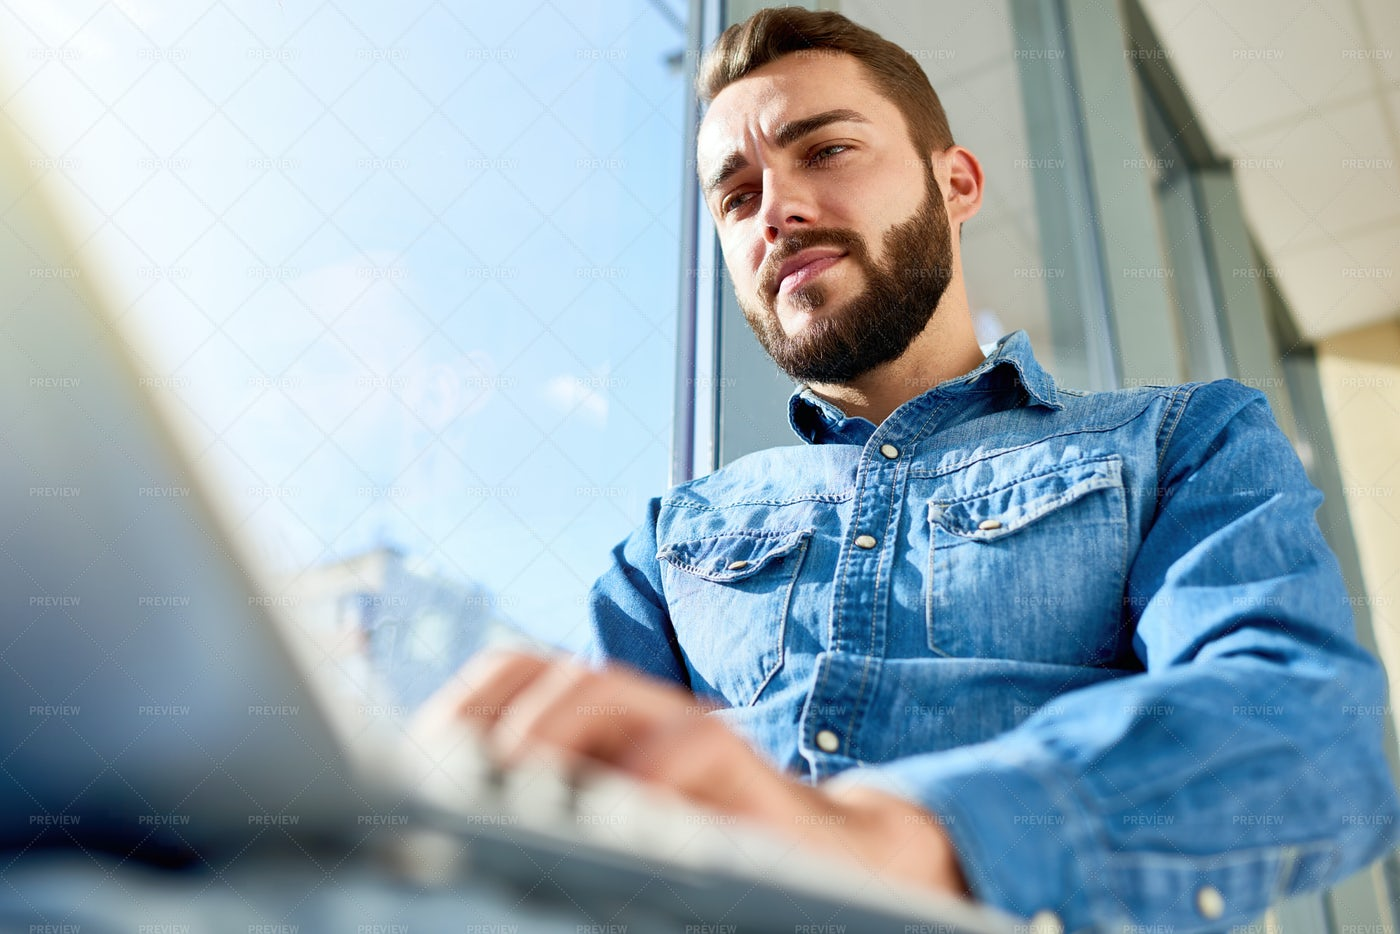 Business Student Using Laptop In...: Stock Photos